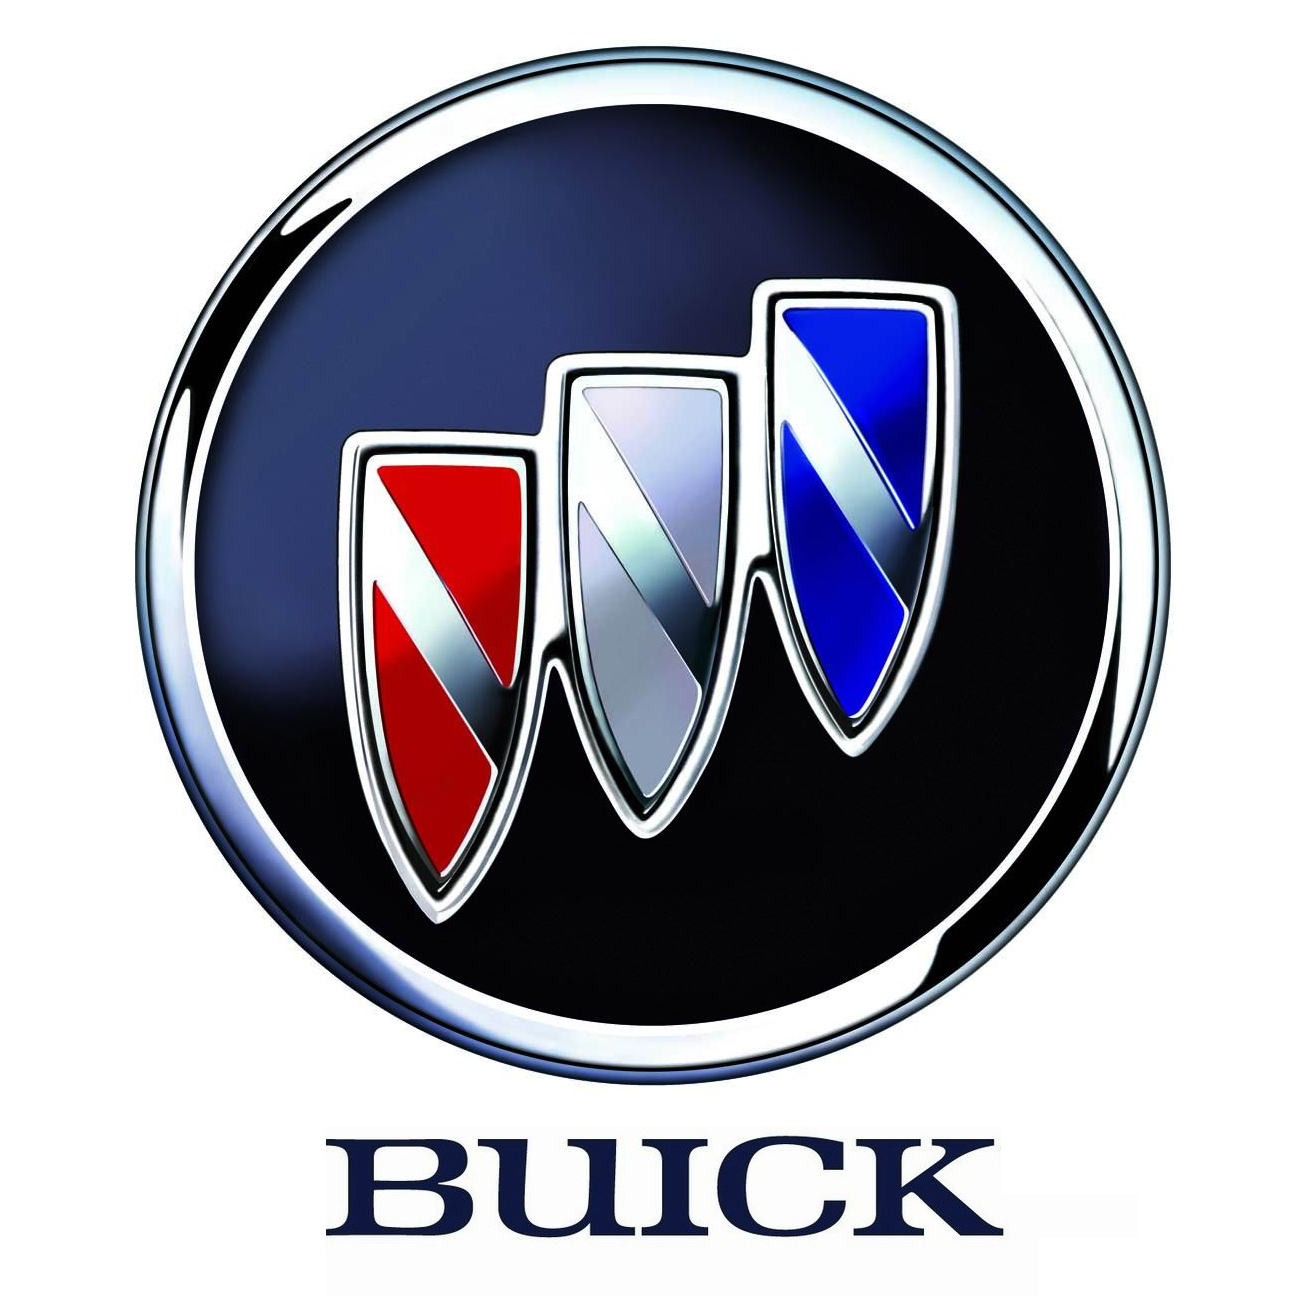 Large Buick Car Logo Zero To 60 Times